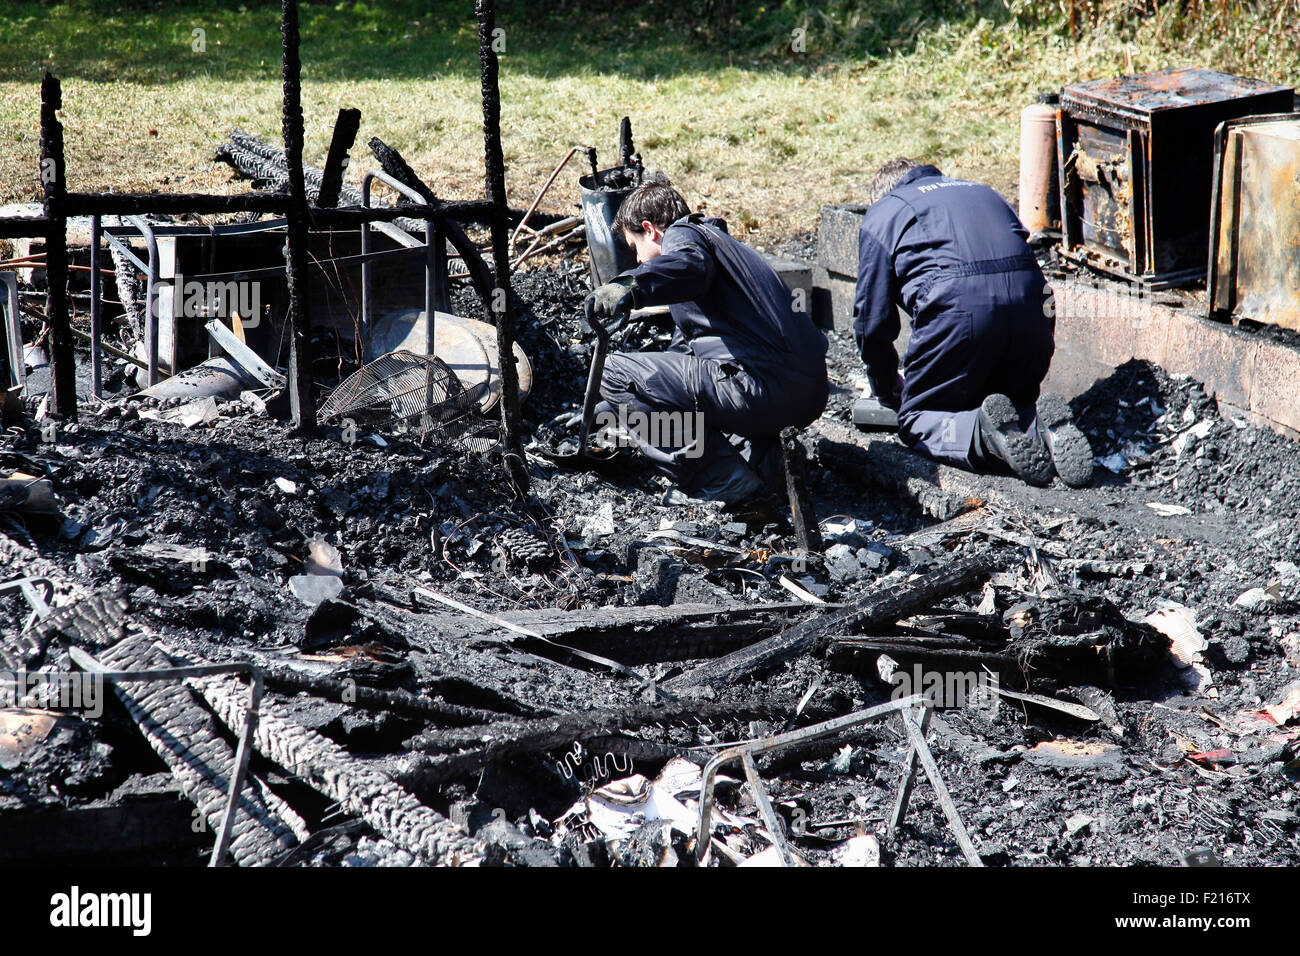 Essential Services, Fire, Forensic team examing charred ruin for potential causes of fire. - Stock Image